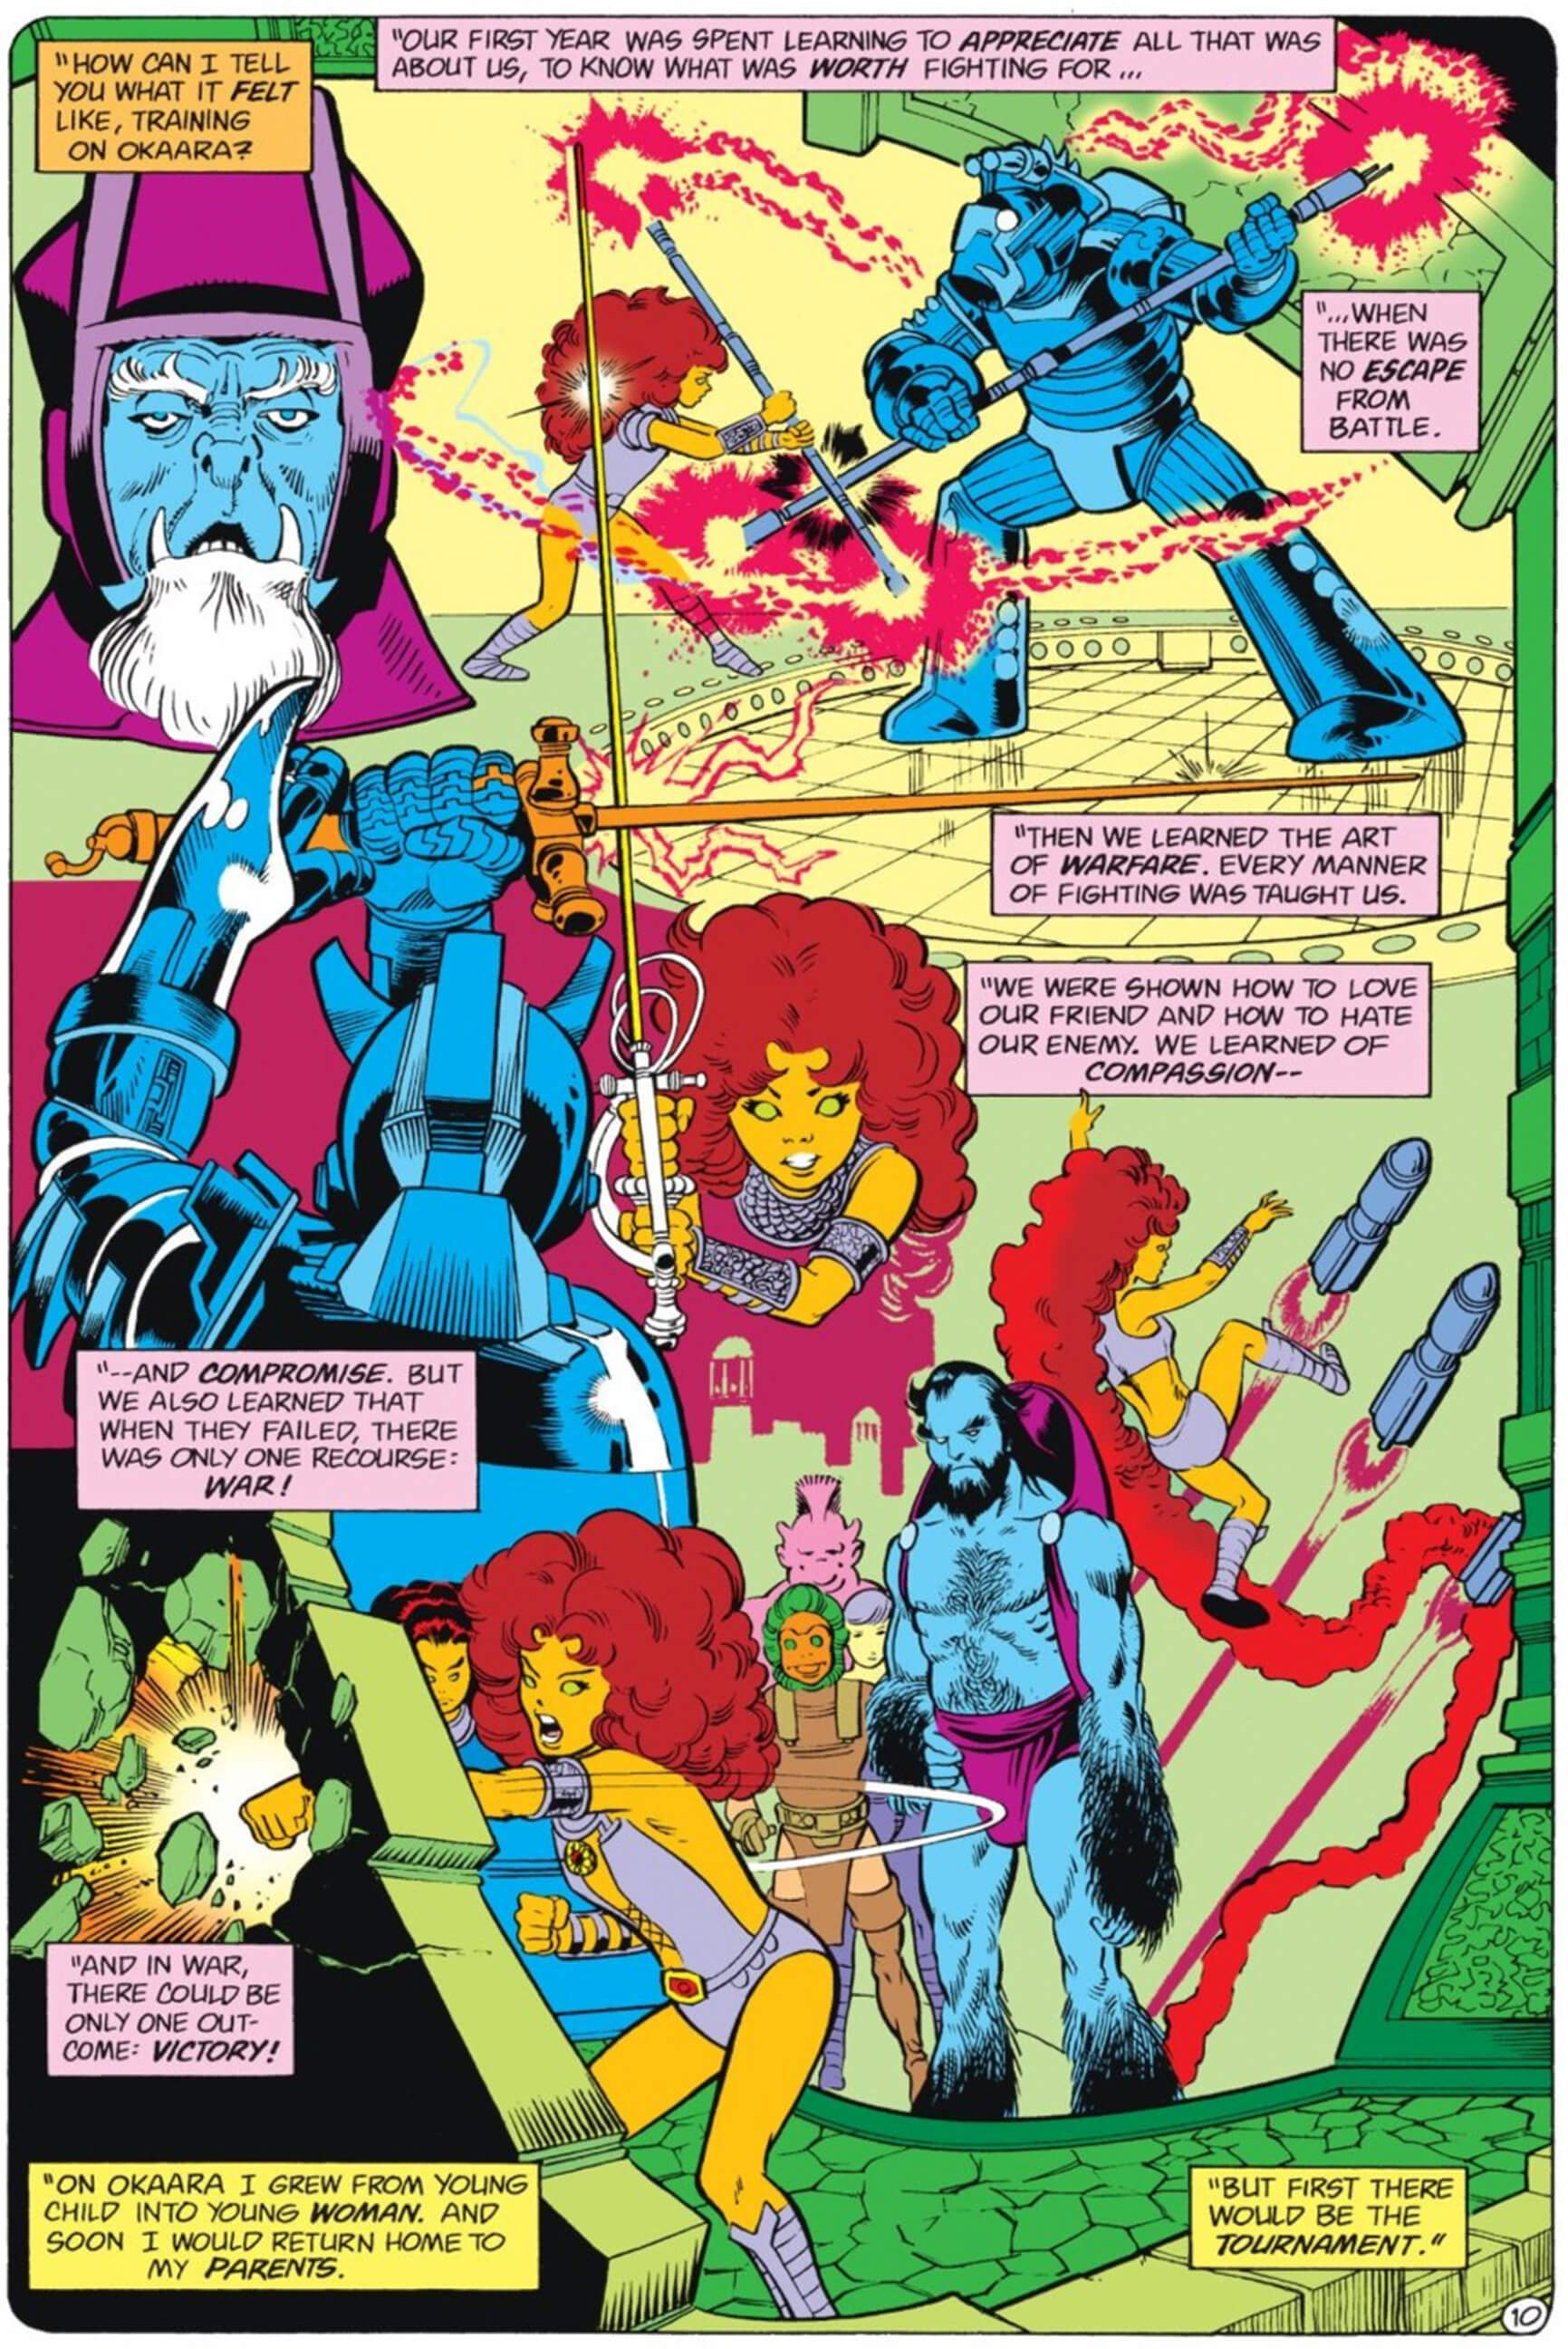 starfire-origin1-origin-talesofnewteentitans-issue4-pg-nocroppingneed-v1.jpg